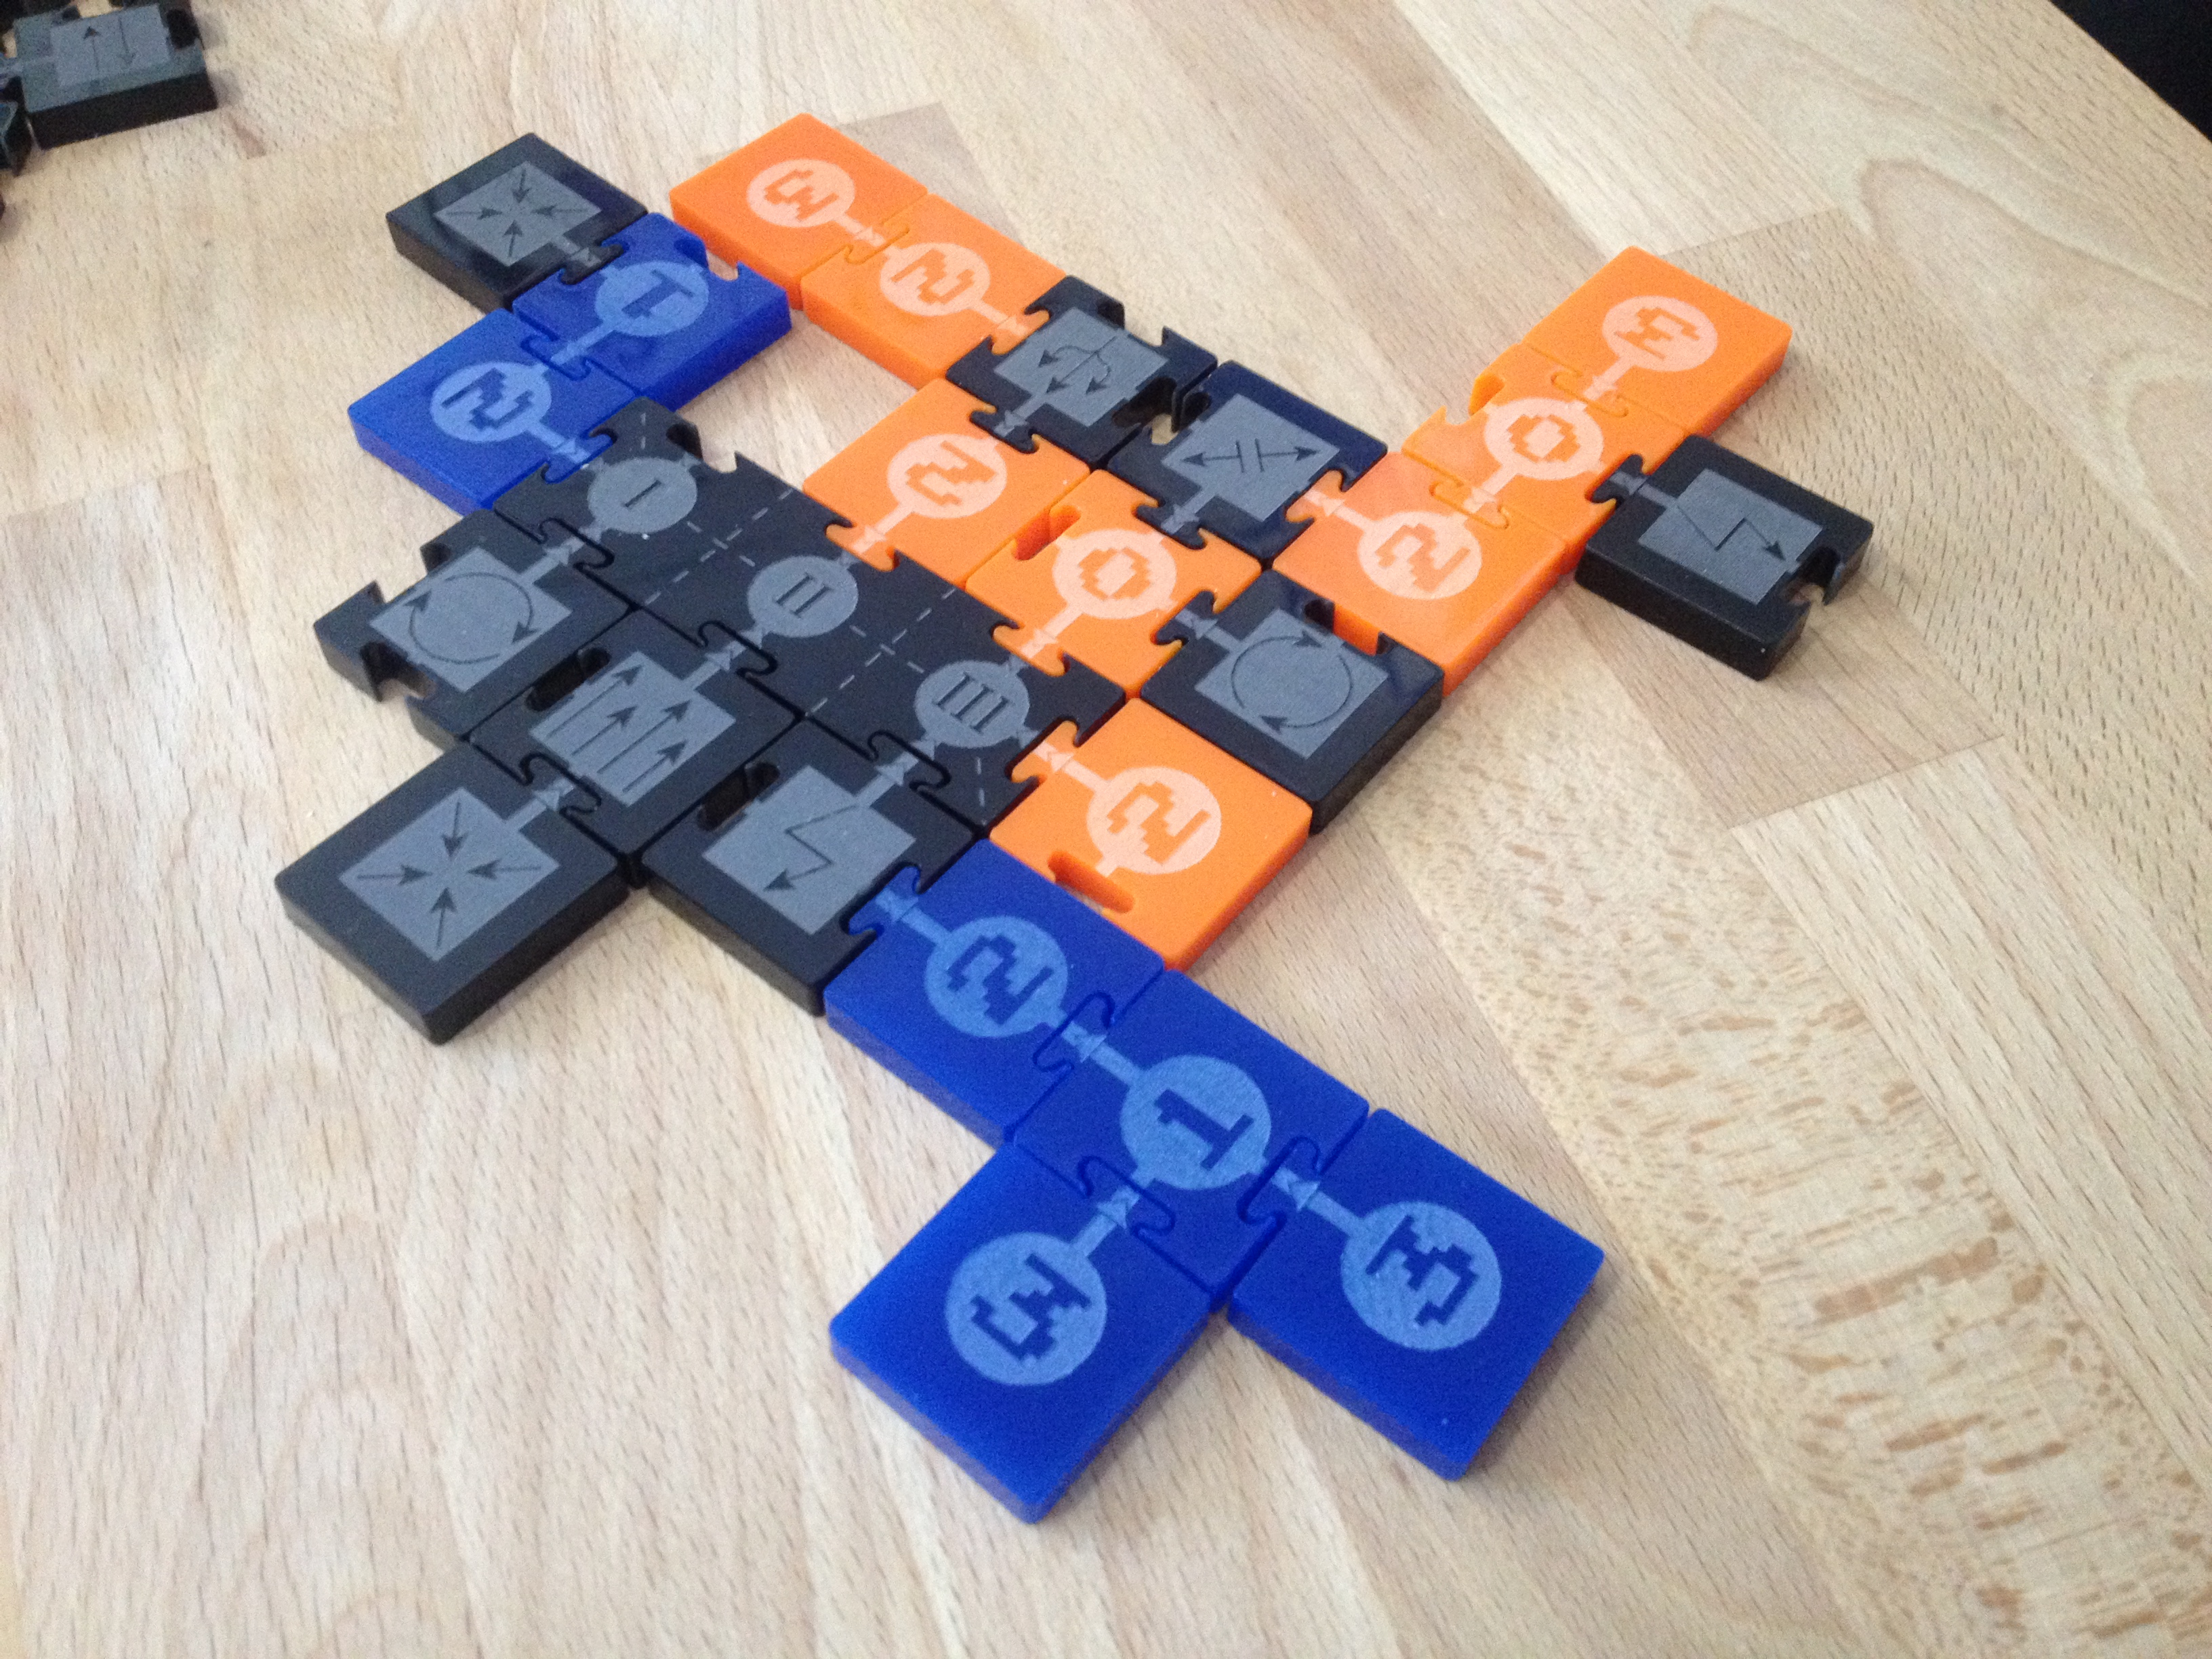 Breaker Blocks - A tabletop game of circuit building and sabotage ...